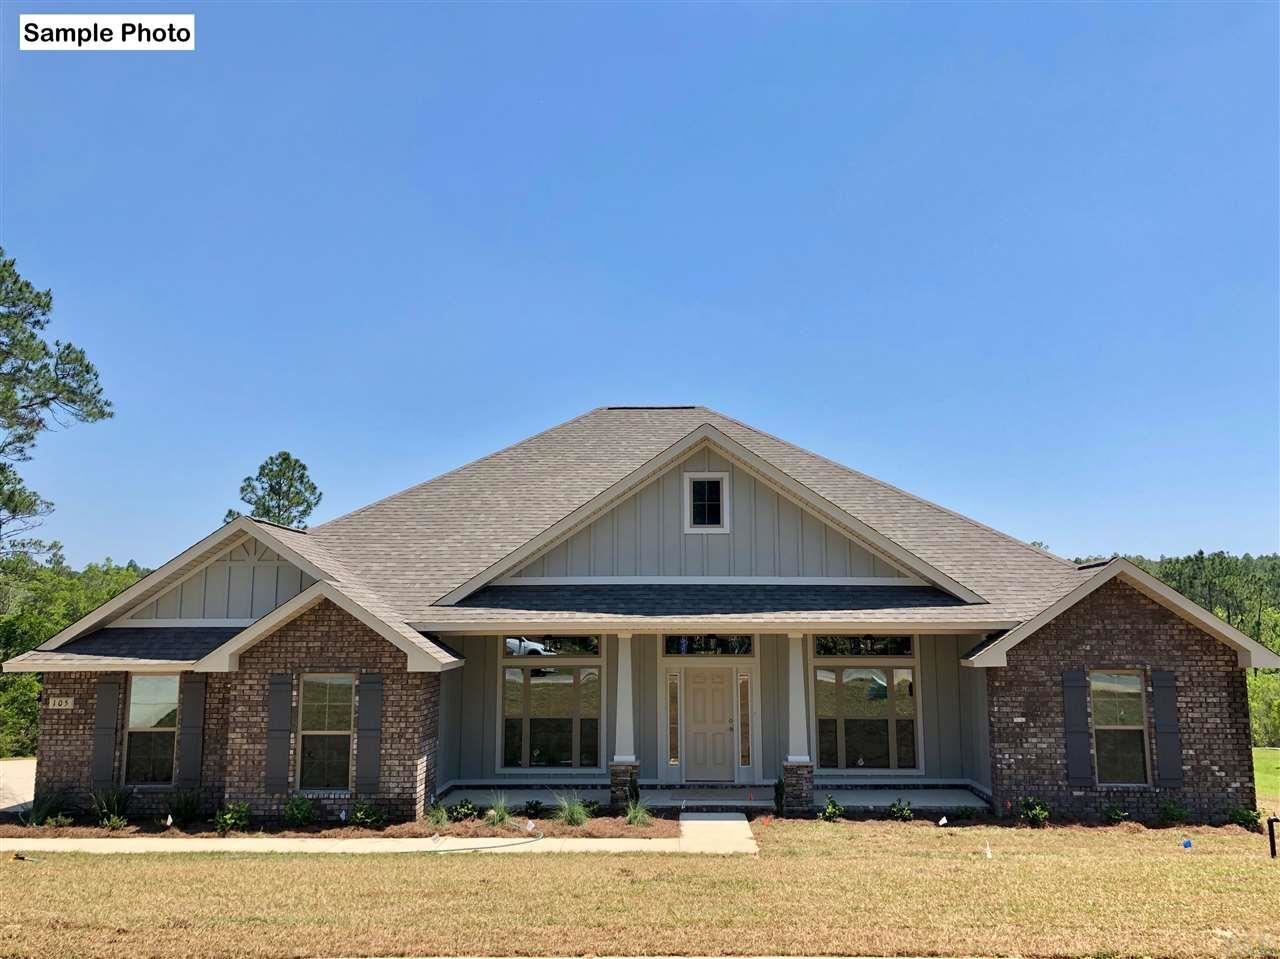 Property Image Of 6235 Benelli Dr In Milton, Fl